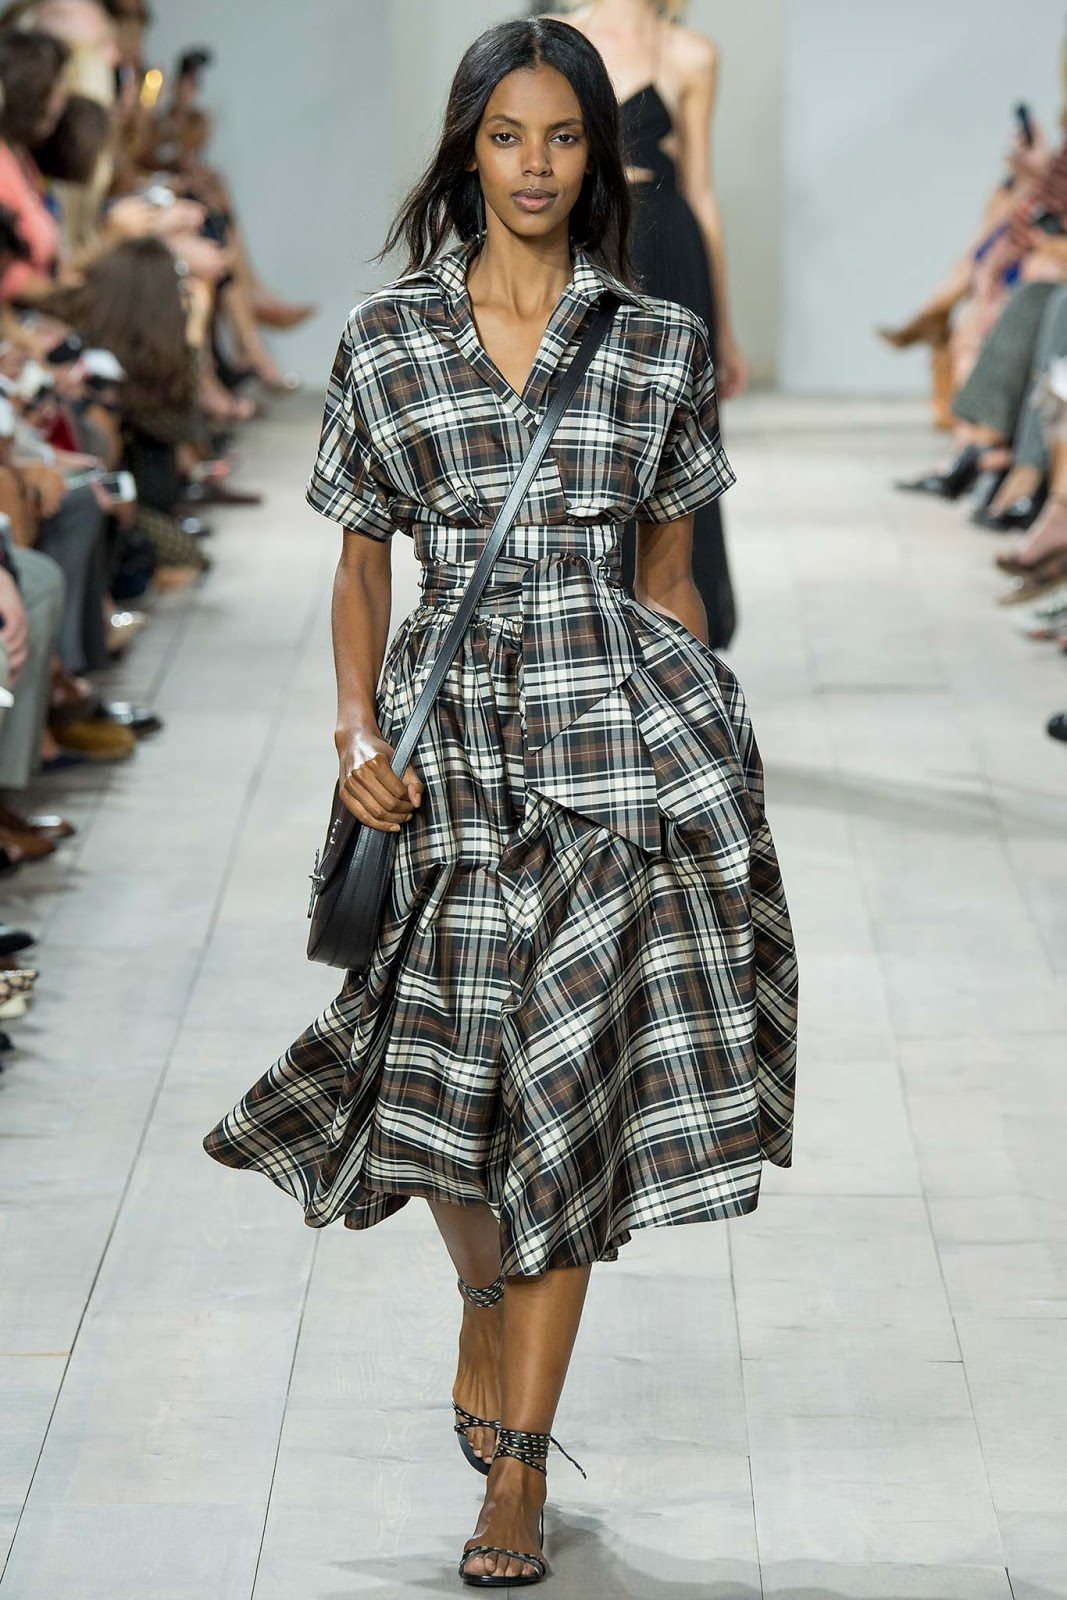 spring/summer 2015 trends / shirtdress / history of shirt dress / michael kors spring 2015 / via fashioned by love british fashion blog